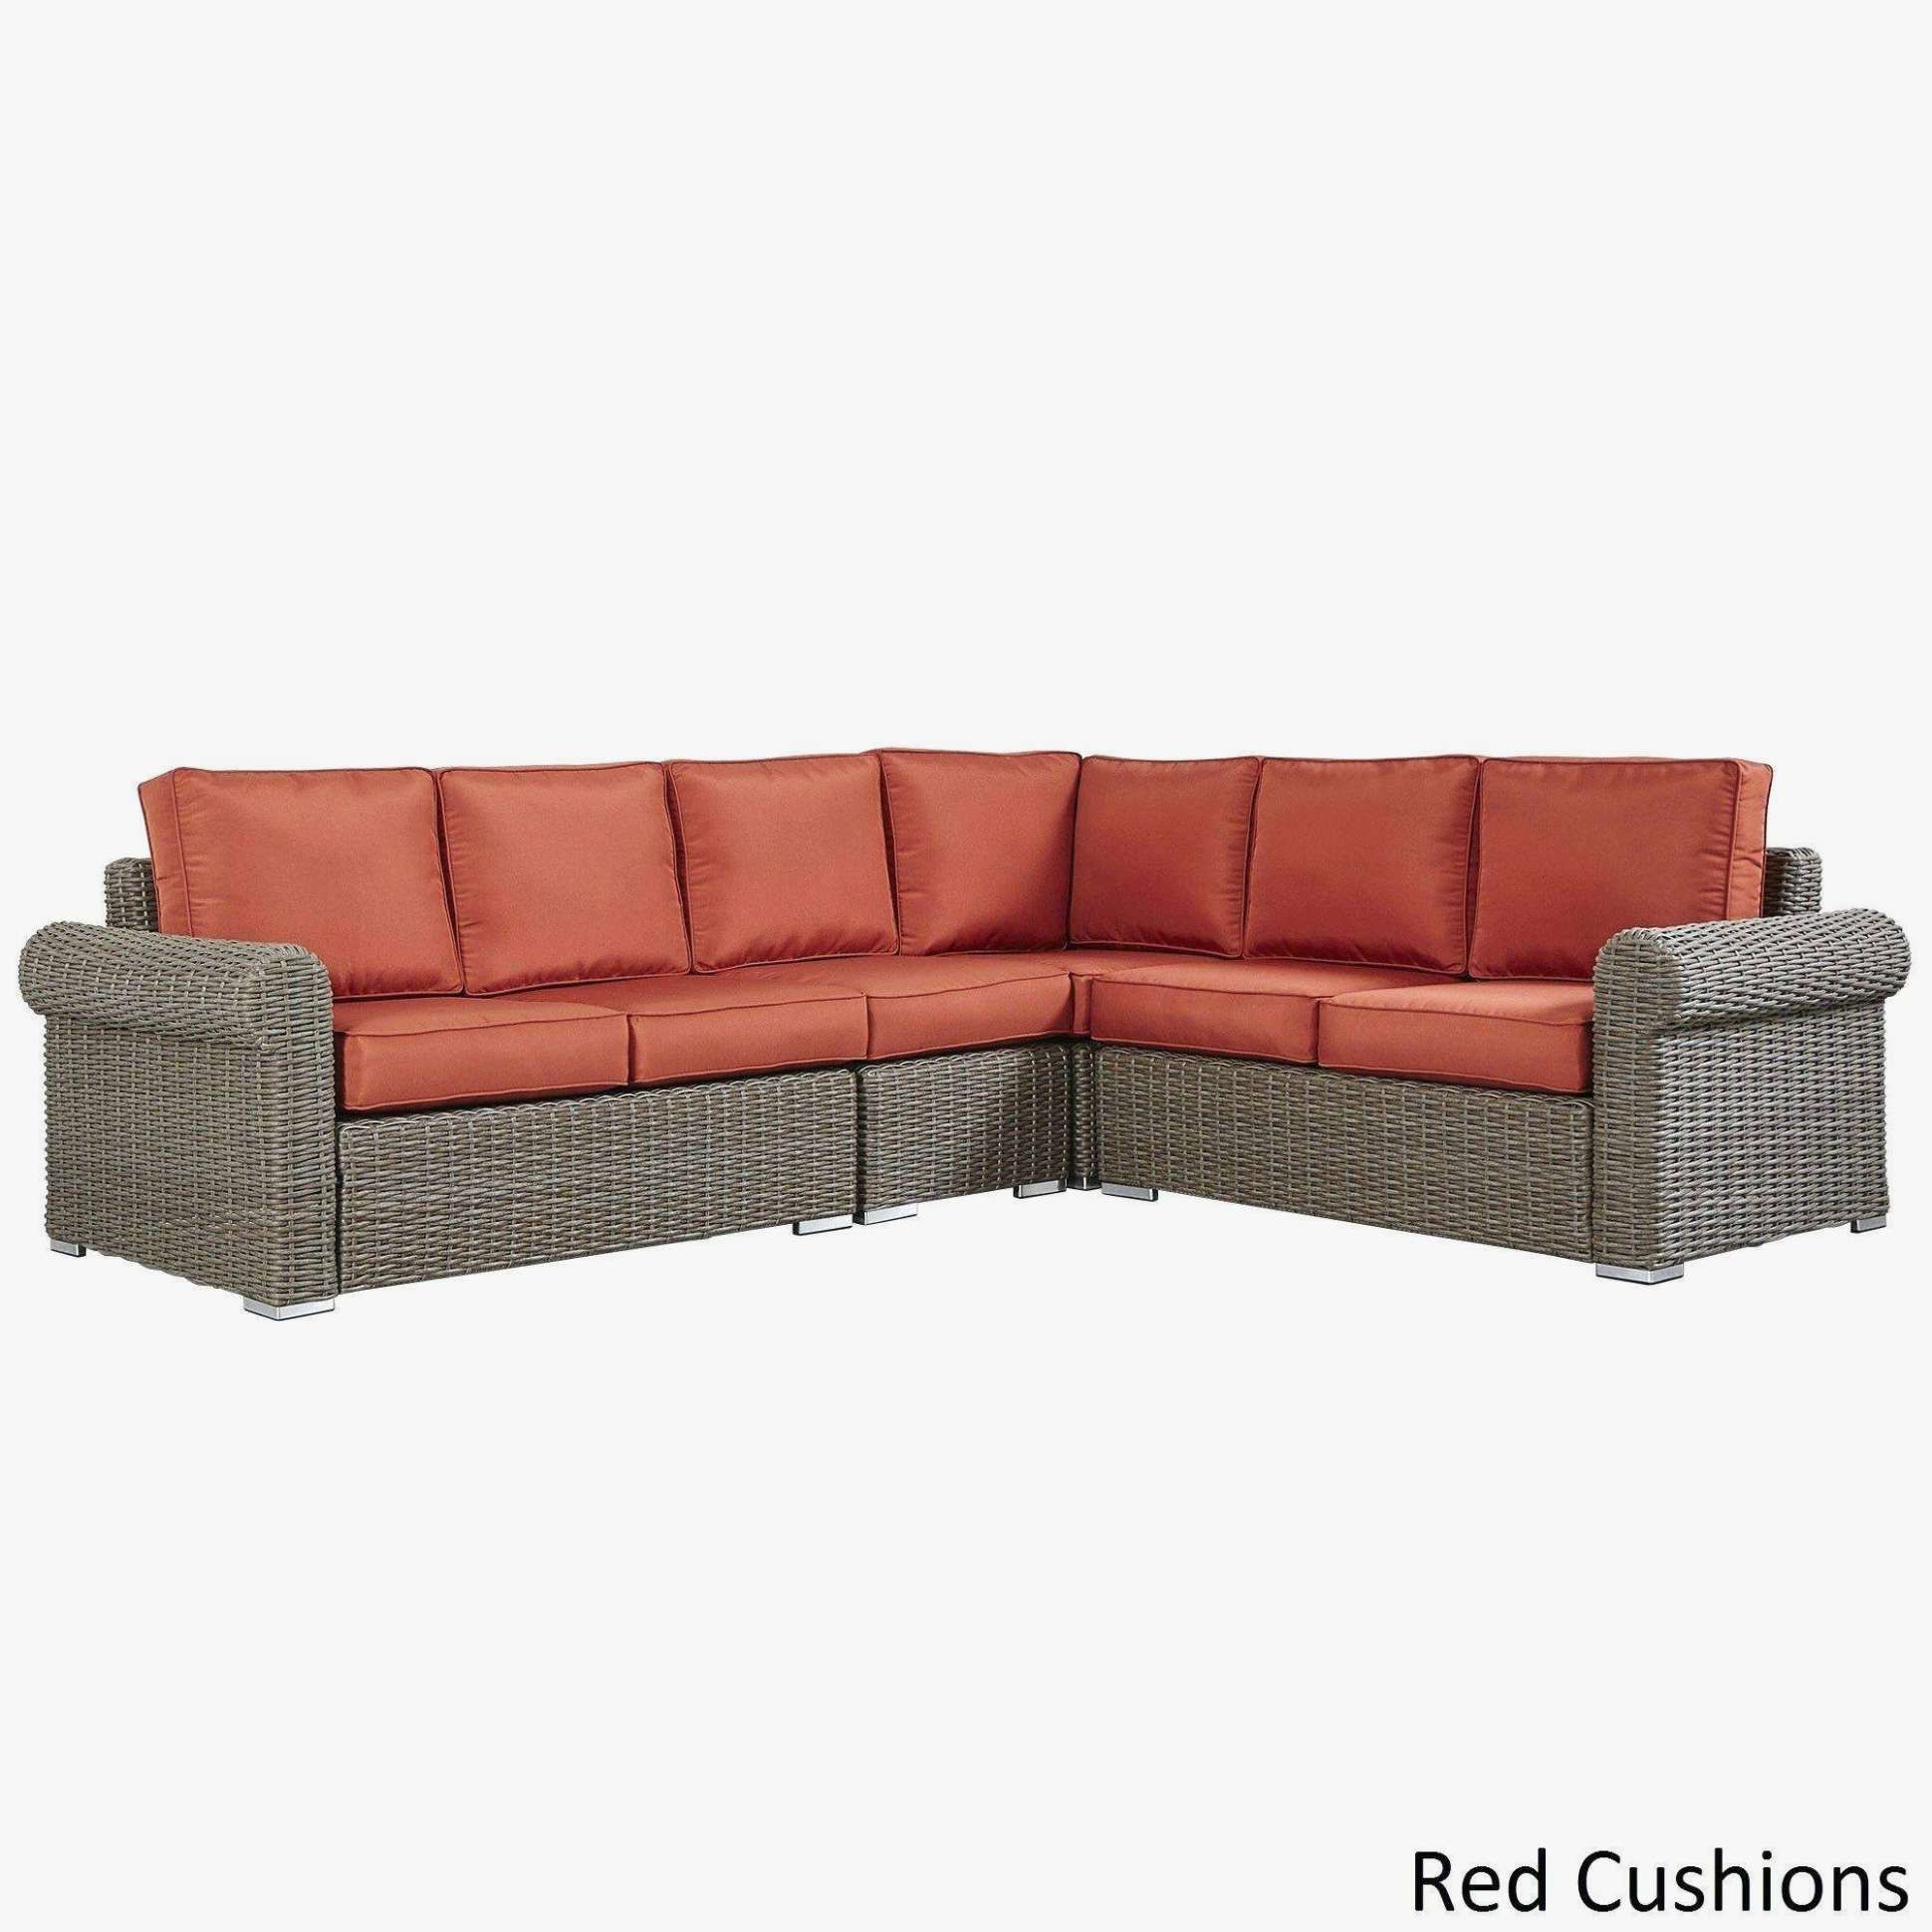 Ecksofa Kaufen Gunstig Sofa Relaxfunktion Gunstig Yct Projekte In 2020 Cushions On Sofa Sofa Design Sofa Sale